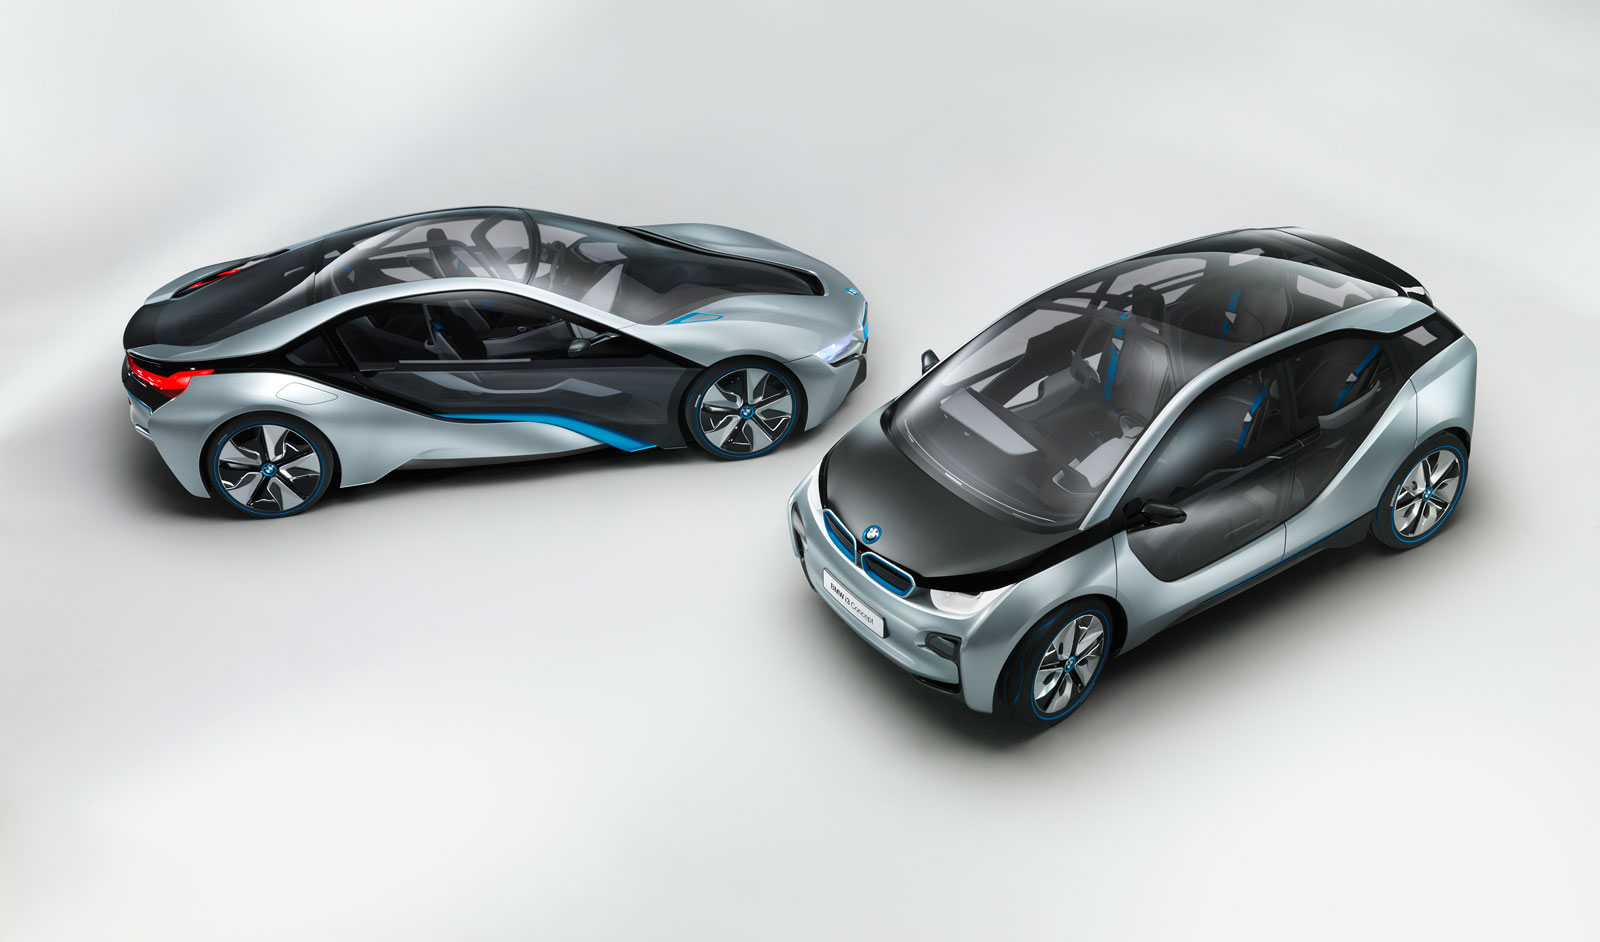 bmw-i3-and-8-concept-cars-01